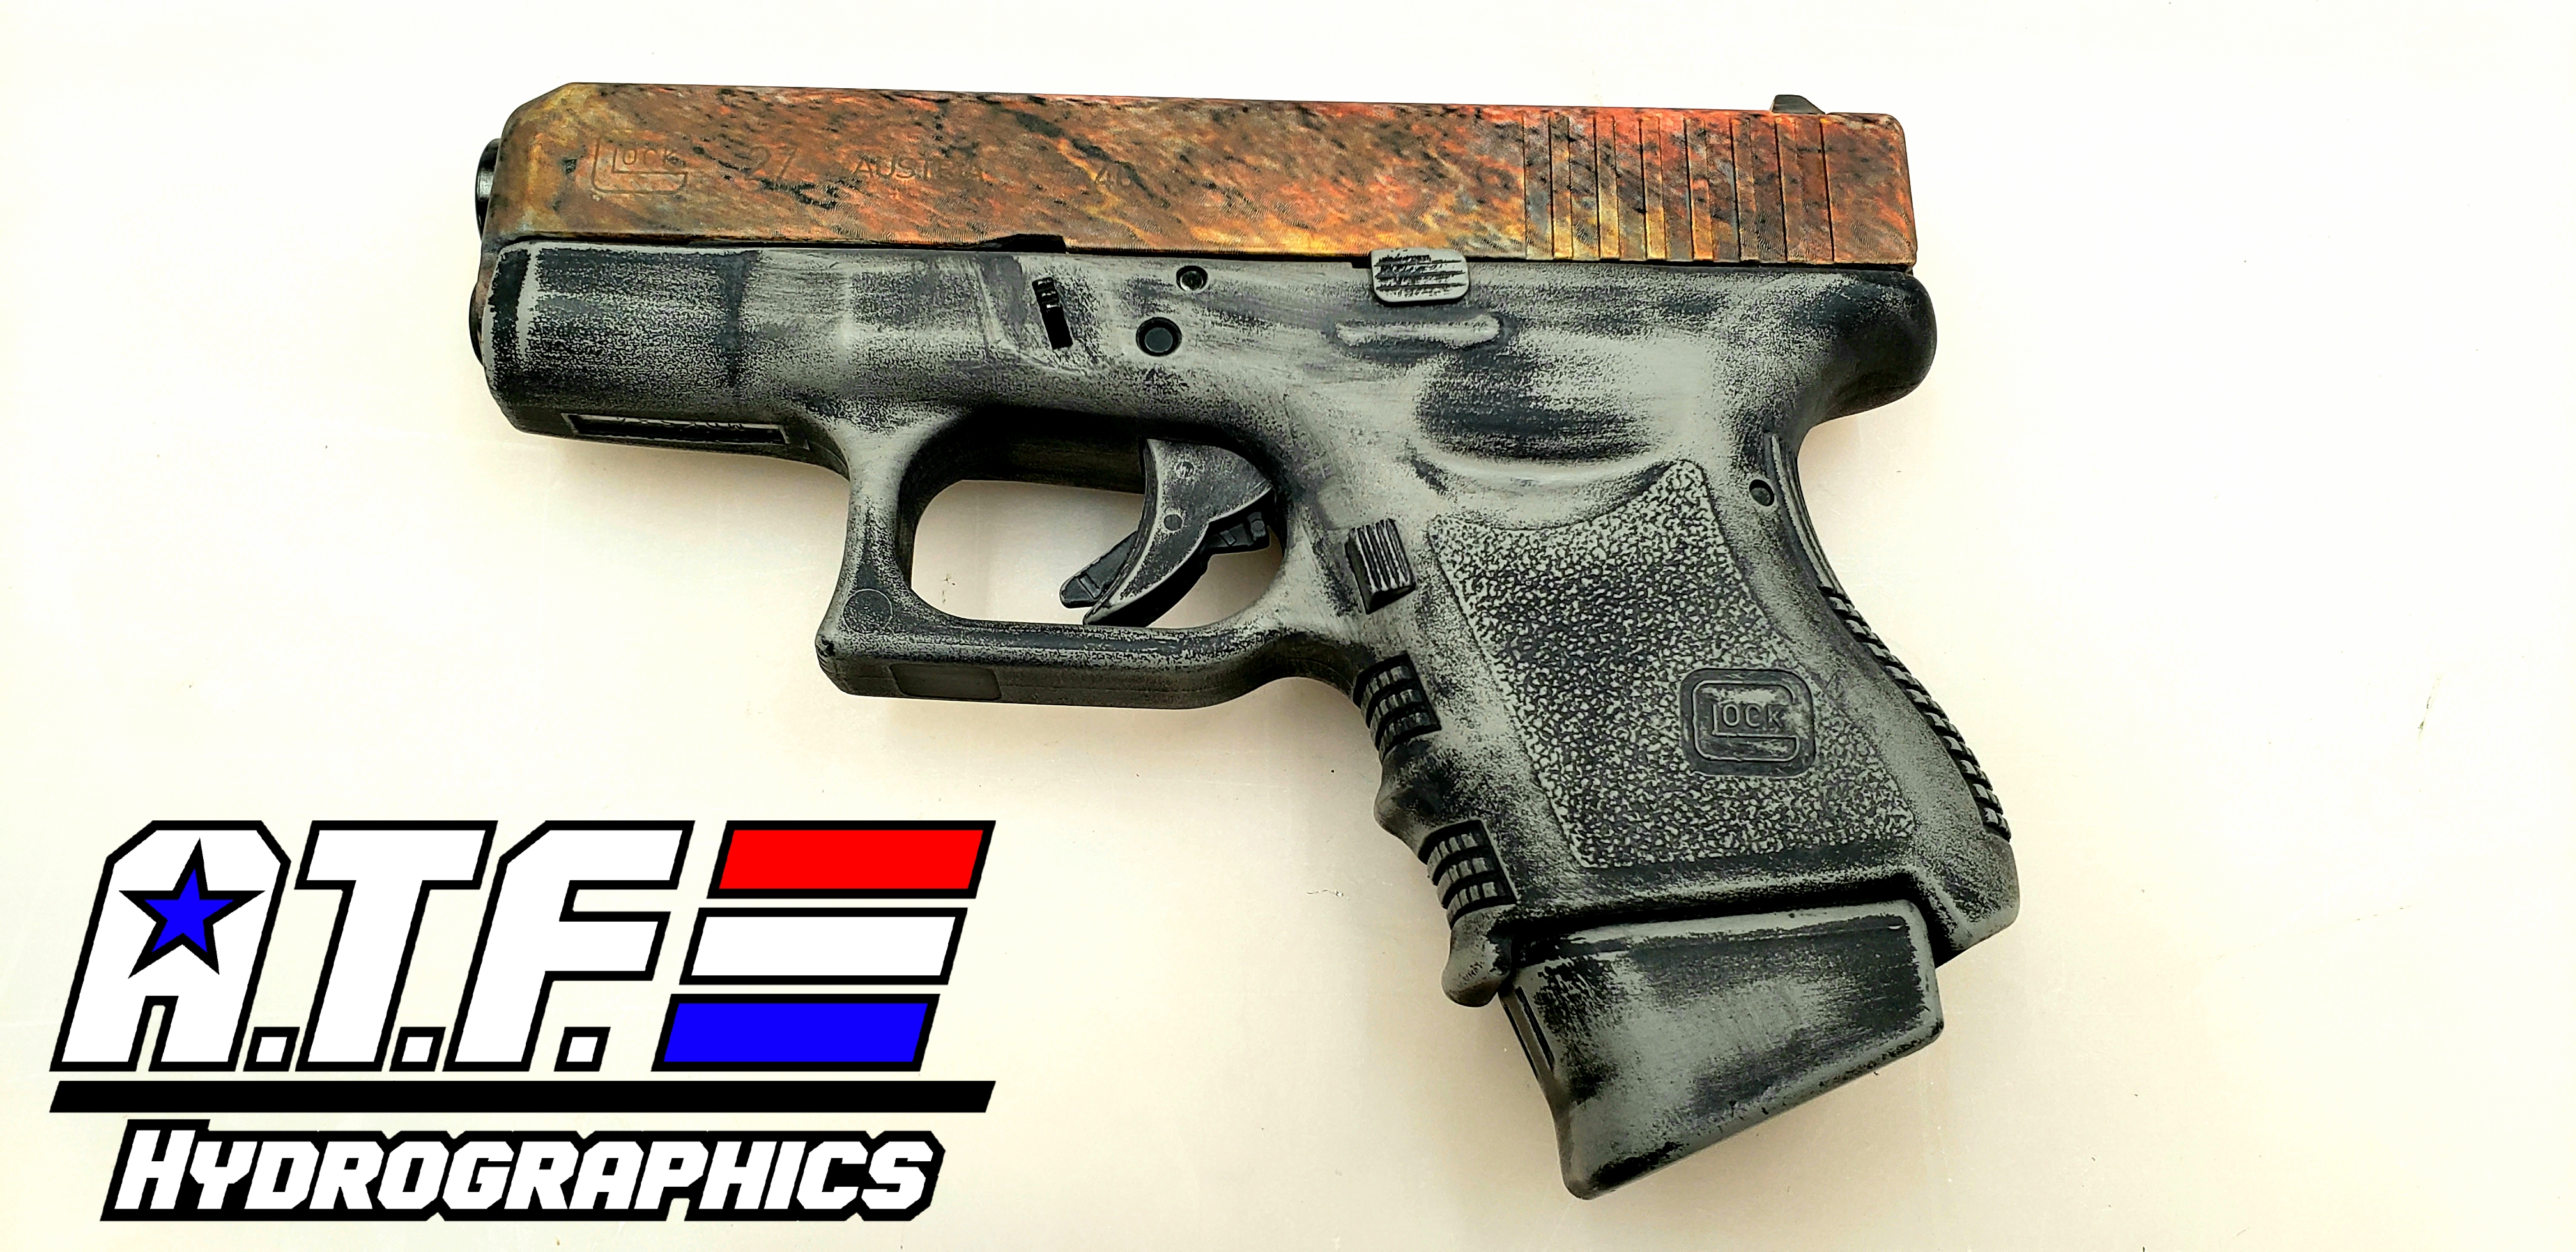 Rust/Battle worn Glock 27